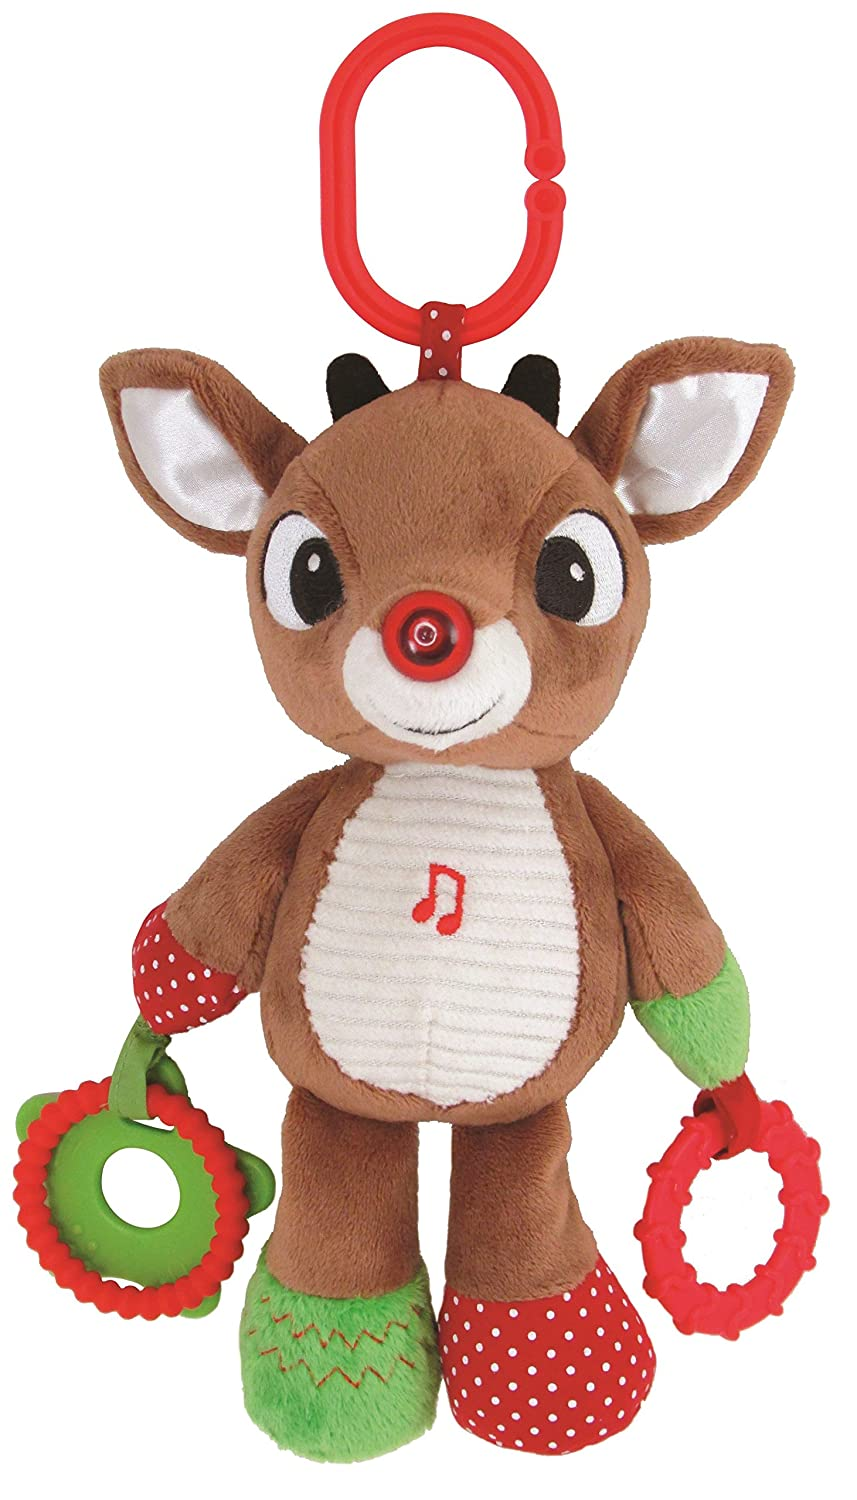 Kids Preferred Rudolph the Red-Nosed Reindeer, Rudolph On the Go Teether Developmental Activity Toy, 12 12 23001